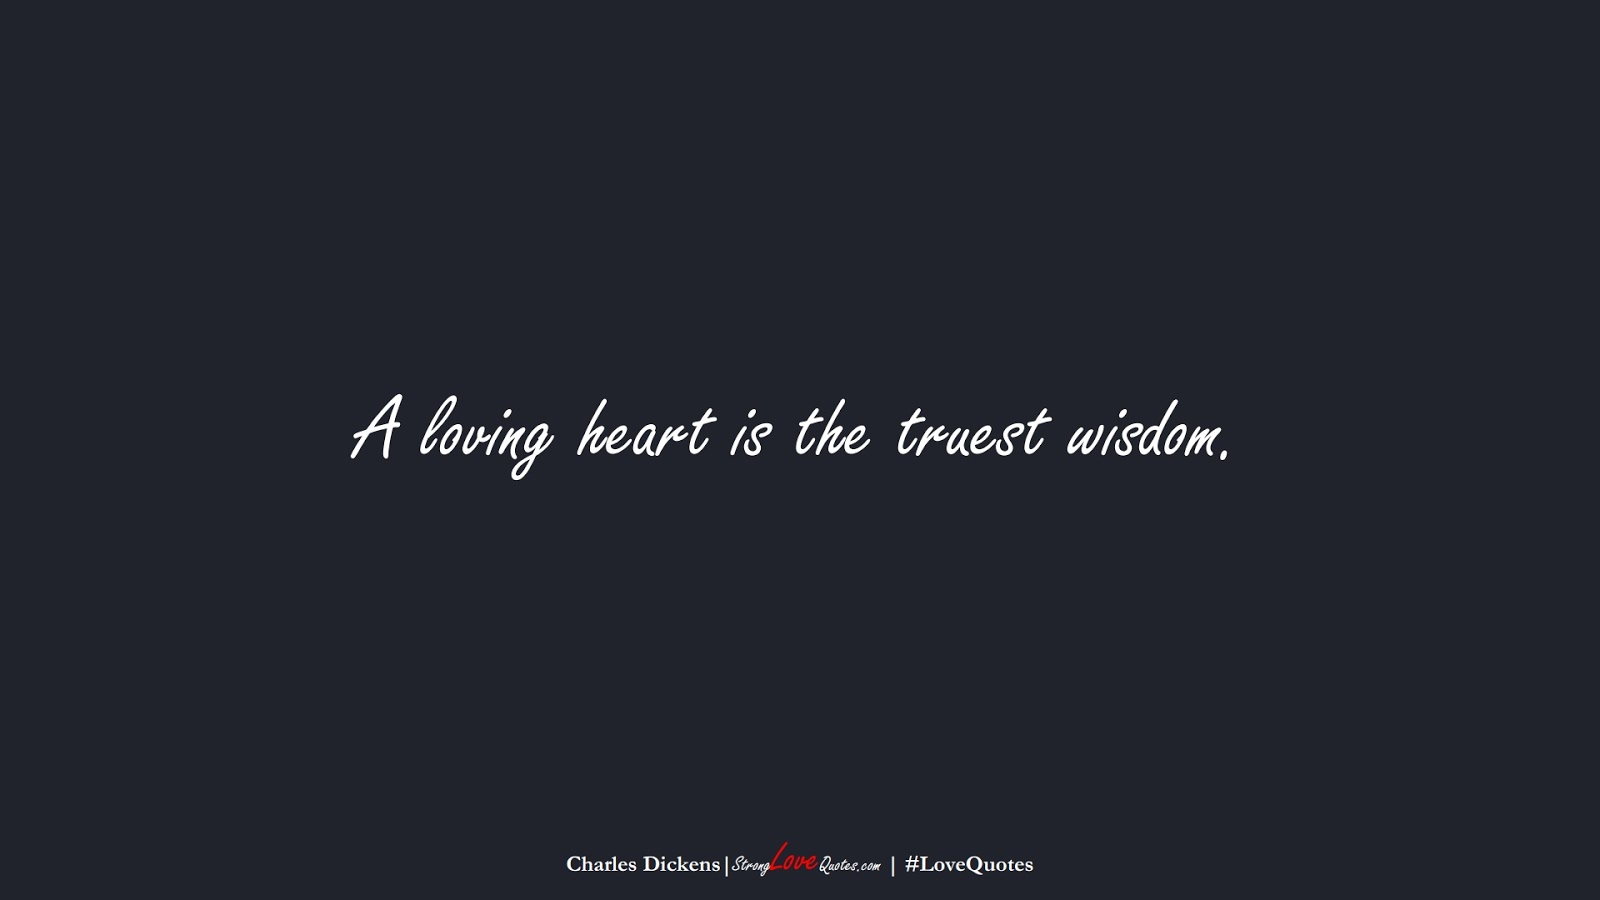 A loving heart is the truest wisdom. (Charles Dickens);  #LoveQuotes